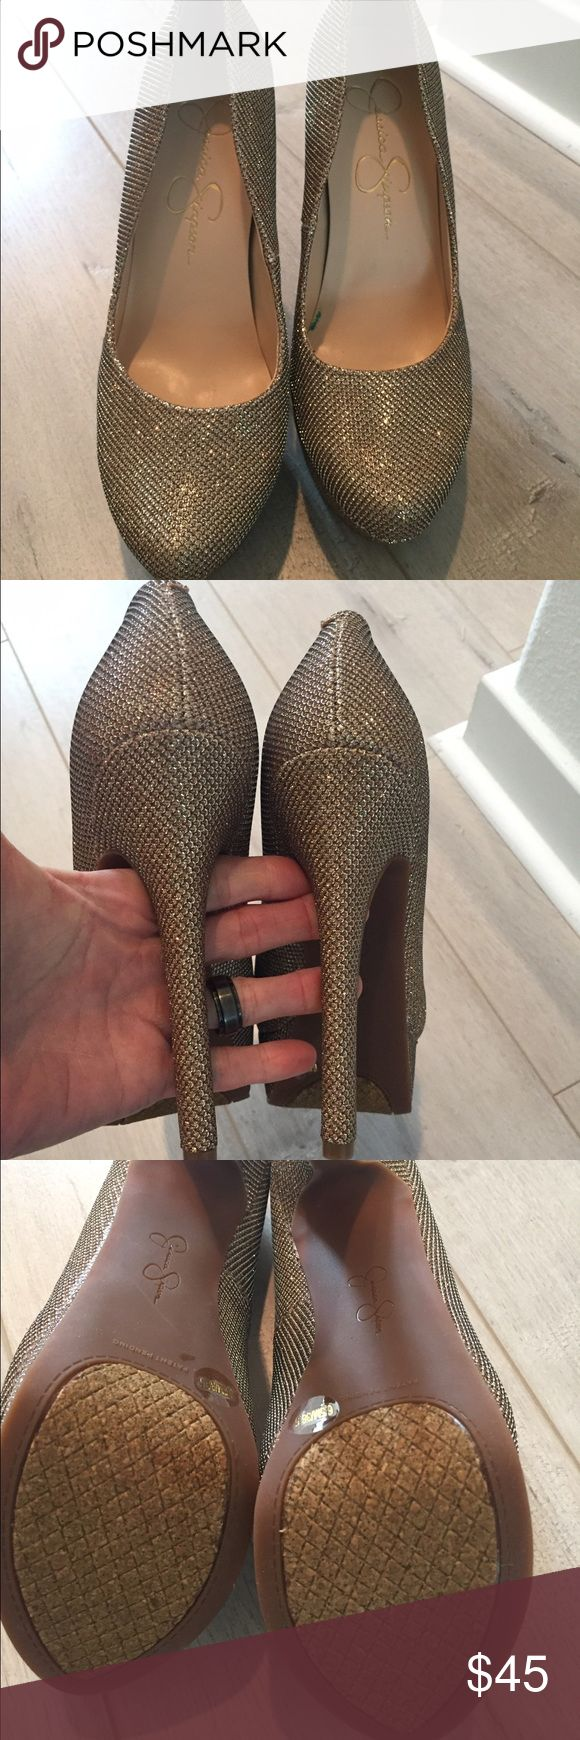 Jessica Simpson Bette-champagne/gold sparkle heels Never worn. Size 6.5. Too big for me. No box Jessica Simpson Shoes Heels